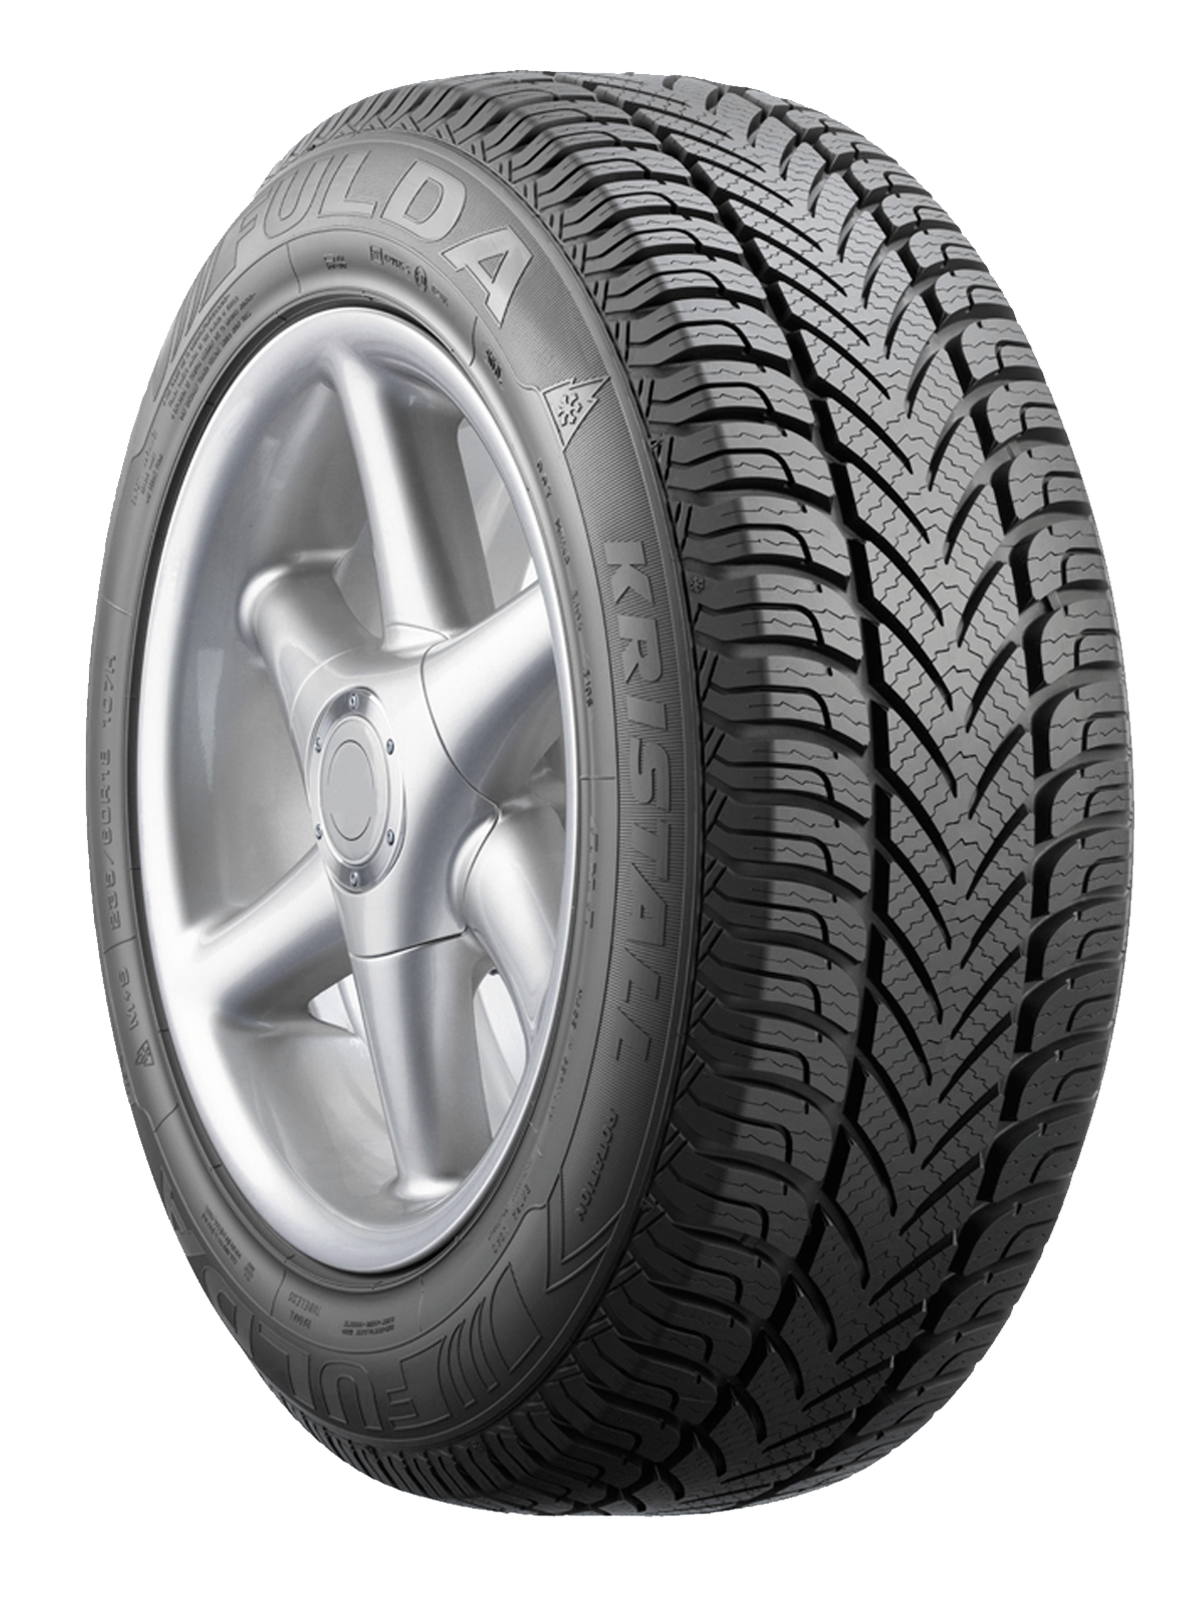 Gomme Nuove Fulda 255/65 R17 110T KRISTALL 4X4 pneumatici nuovi Invernale